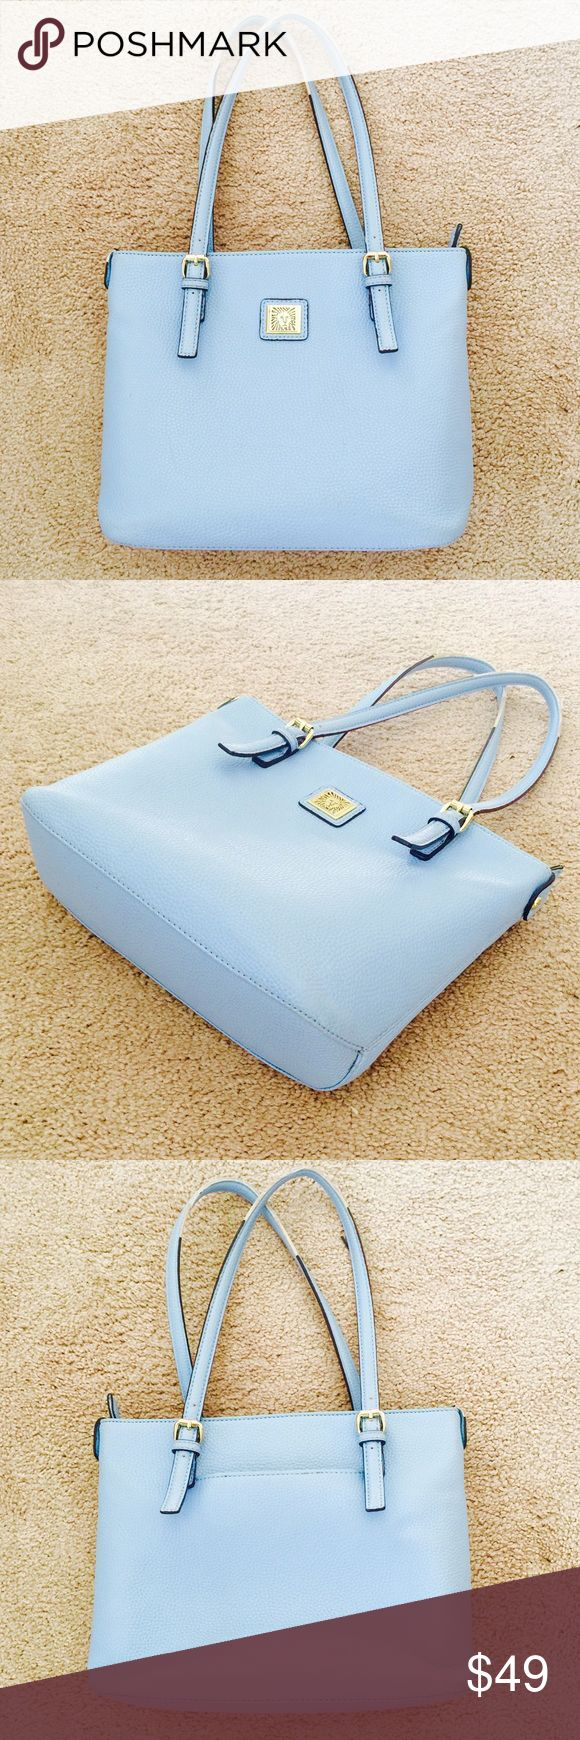 ❗Nordstrom's Anne Klein Sky Blue Tote MSRP $98 ❗️Anne Klein from Nordstrom's Sky Blue Tote. Sleek & perfect for spring! Retails $98. Great condition some wear to top handles as shown. Make an offer! I consider all reasonable offers on items & give great bundle deals! Winter cleanout sale ;-) Nordstrom Bags